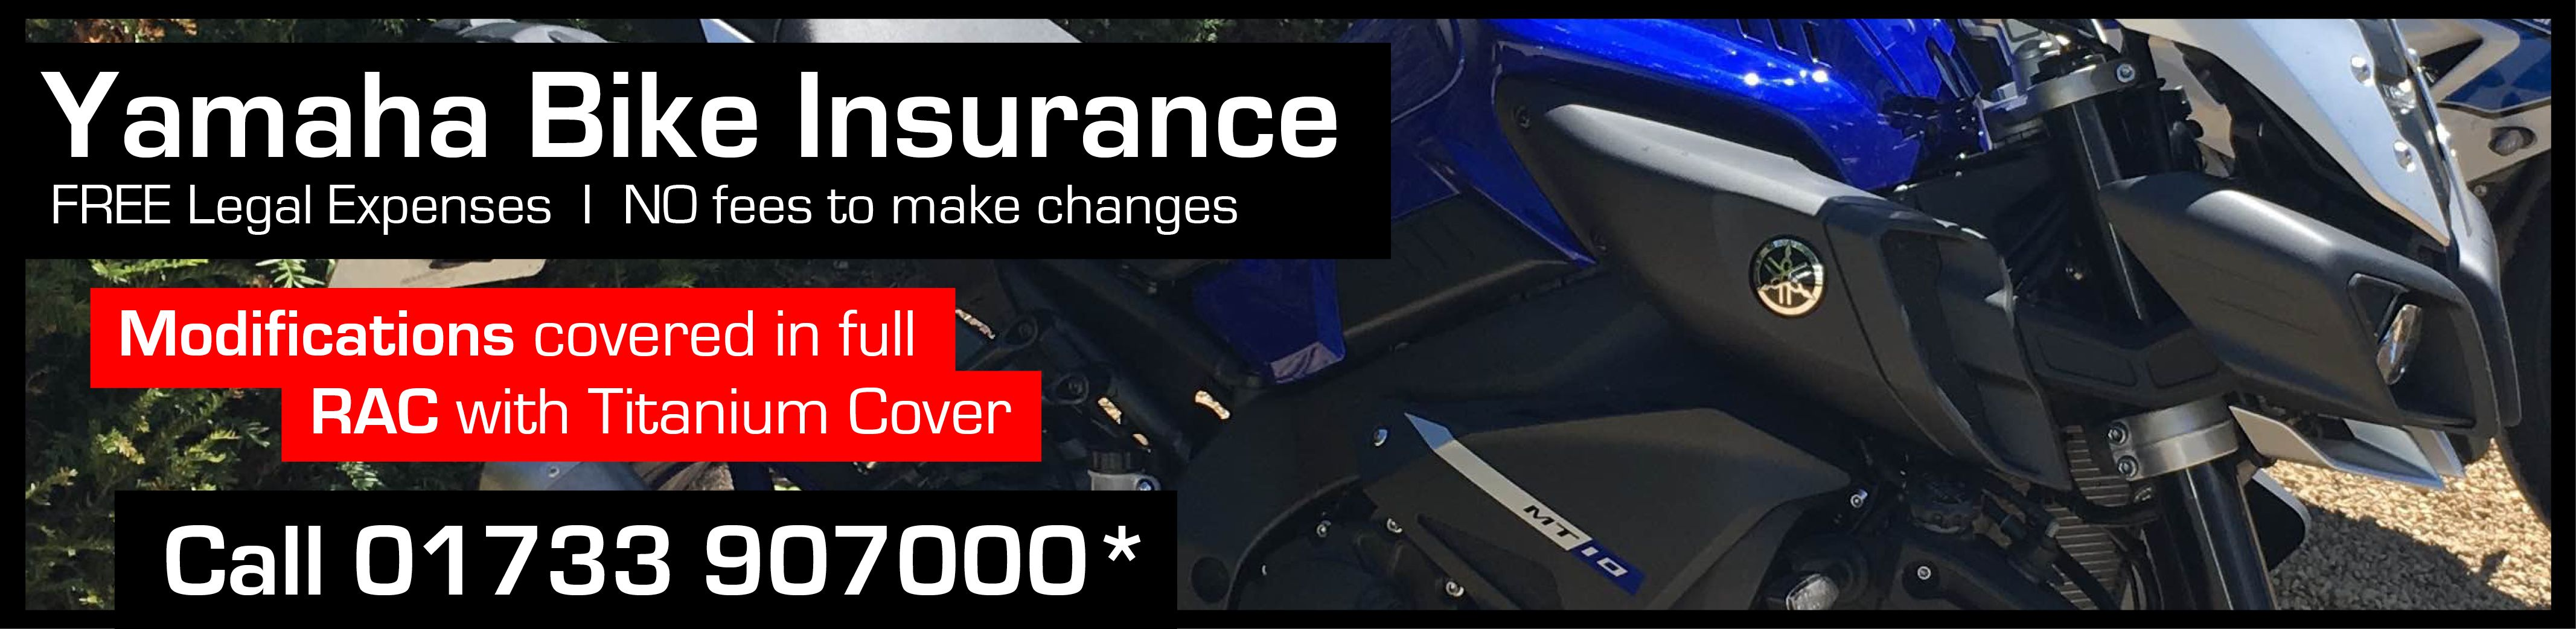 yamaha-Bike-Insurance